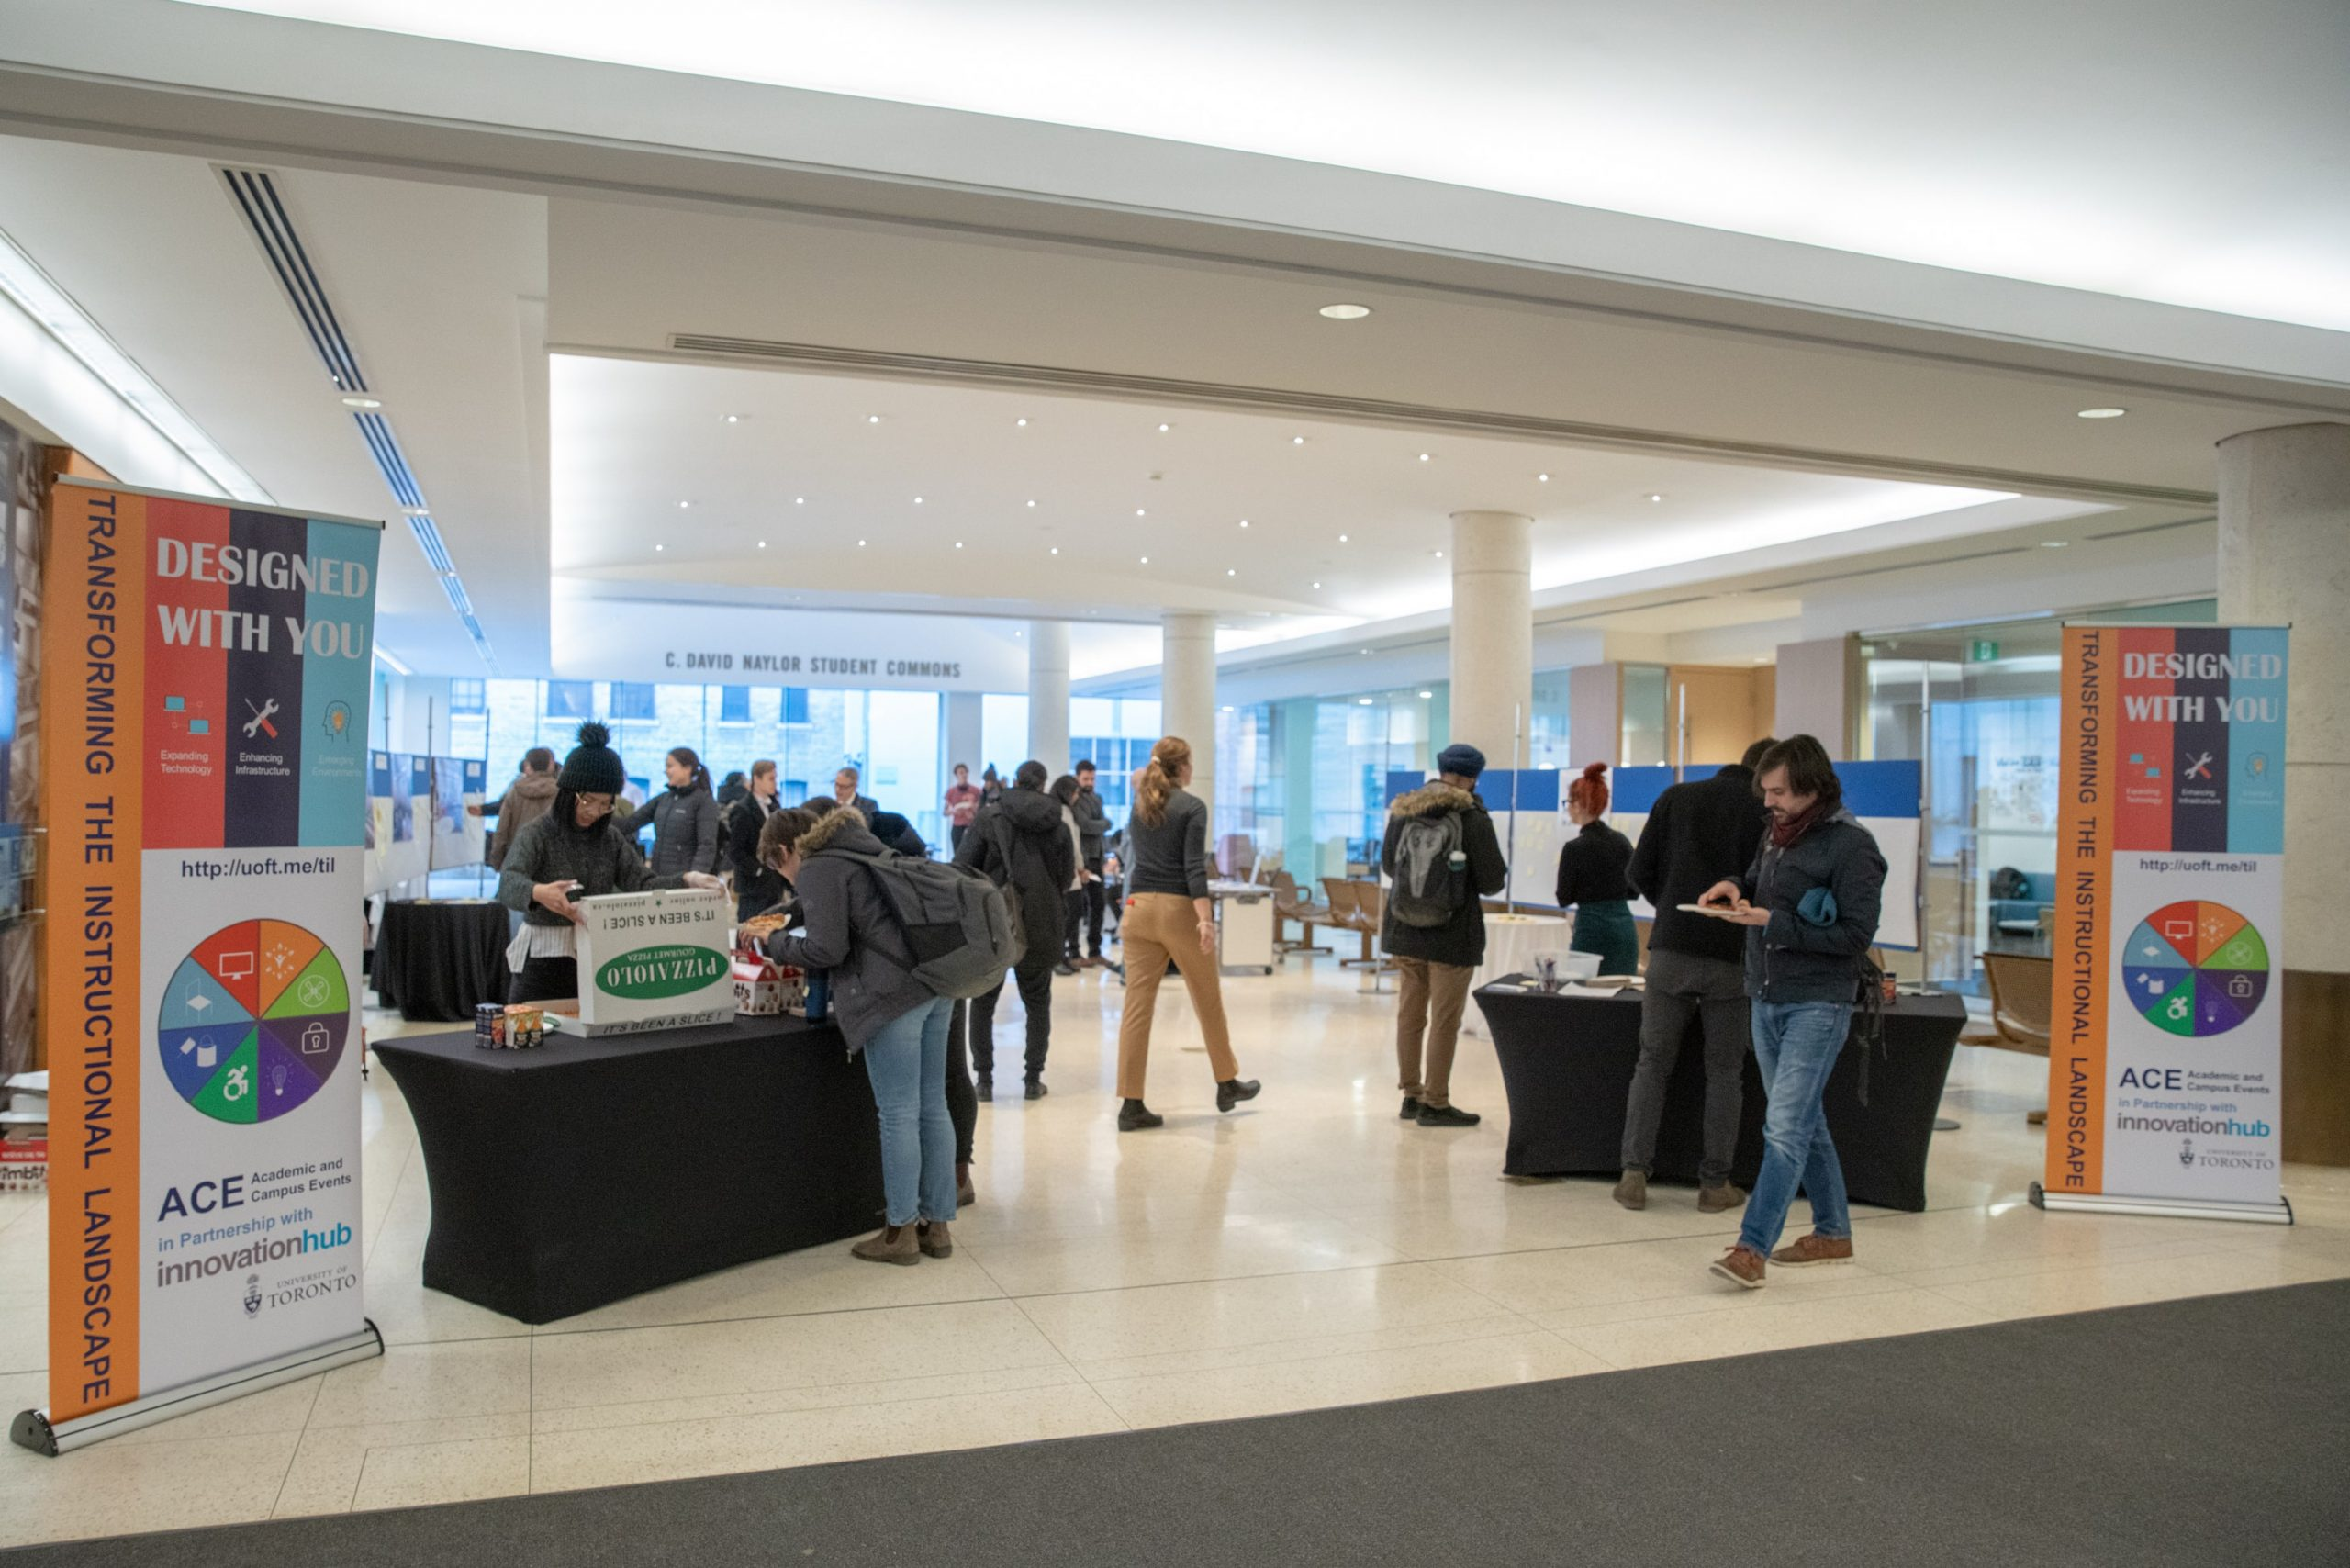 Photo of a TIL event in 2018, with students walking around and exploring the space.